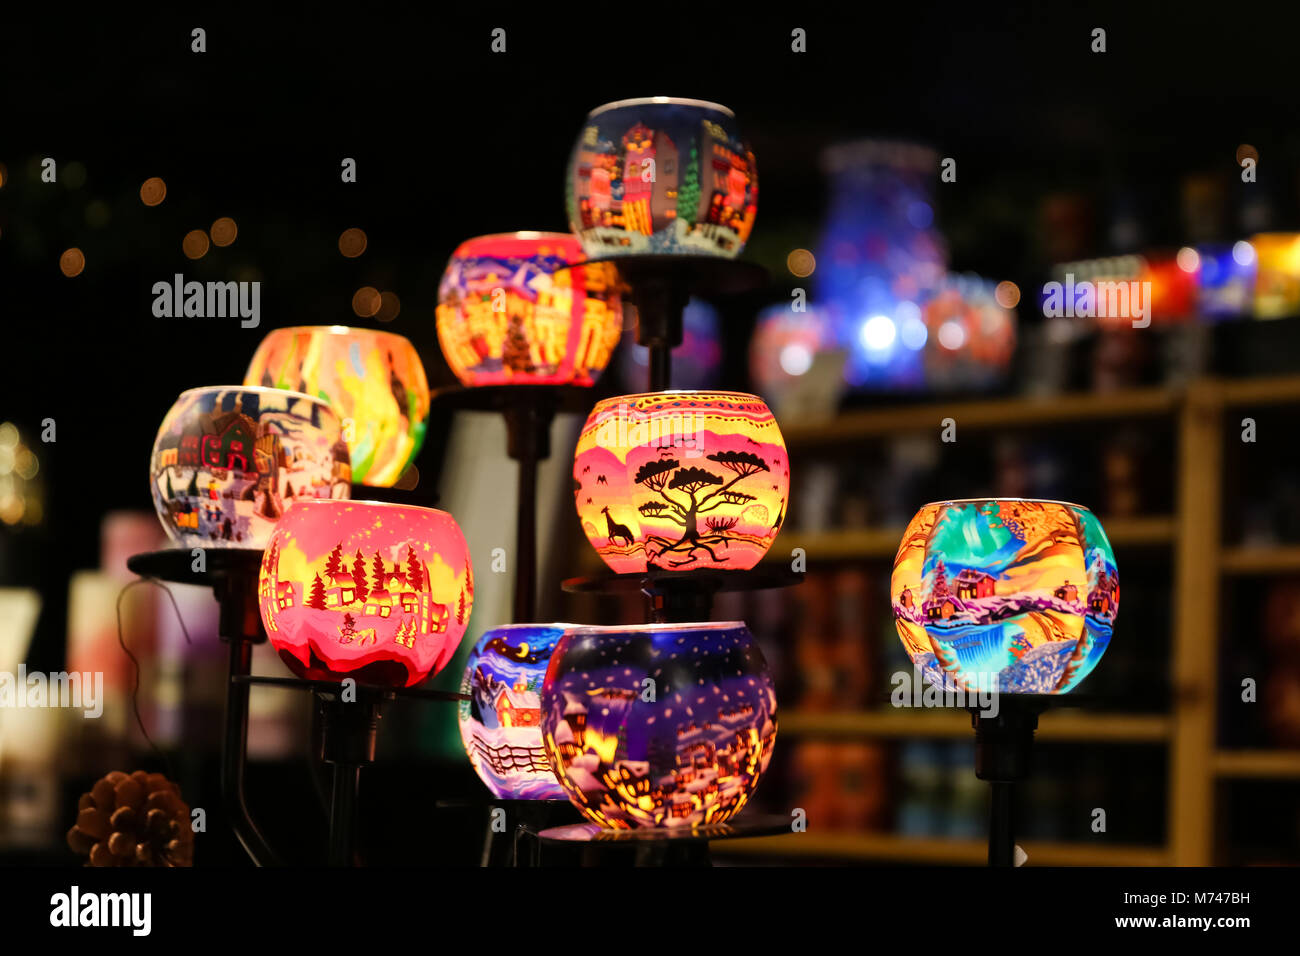 Candle Holders Souvenirs in Alexanderplatz Christmas Market, Berlin, Germany - Stock Image